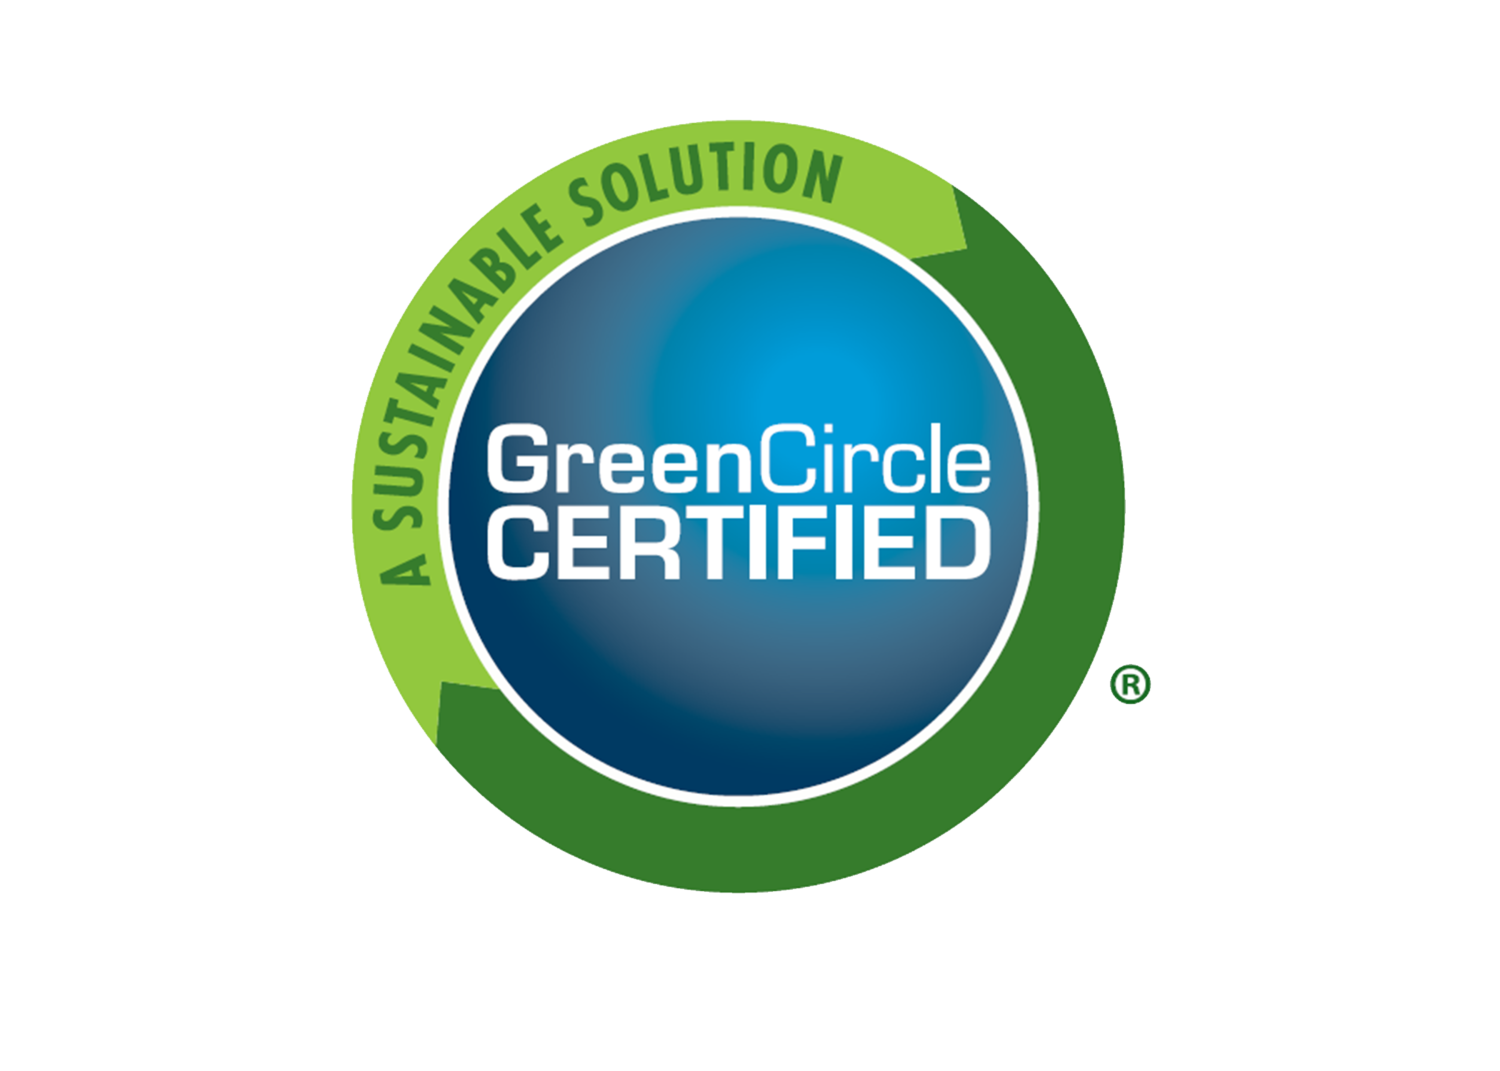 GreenCircle Certified